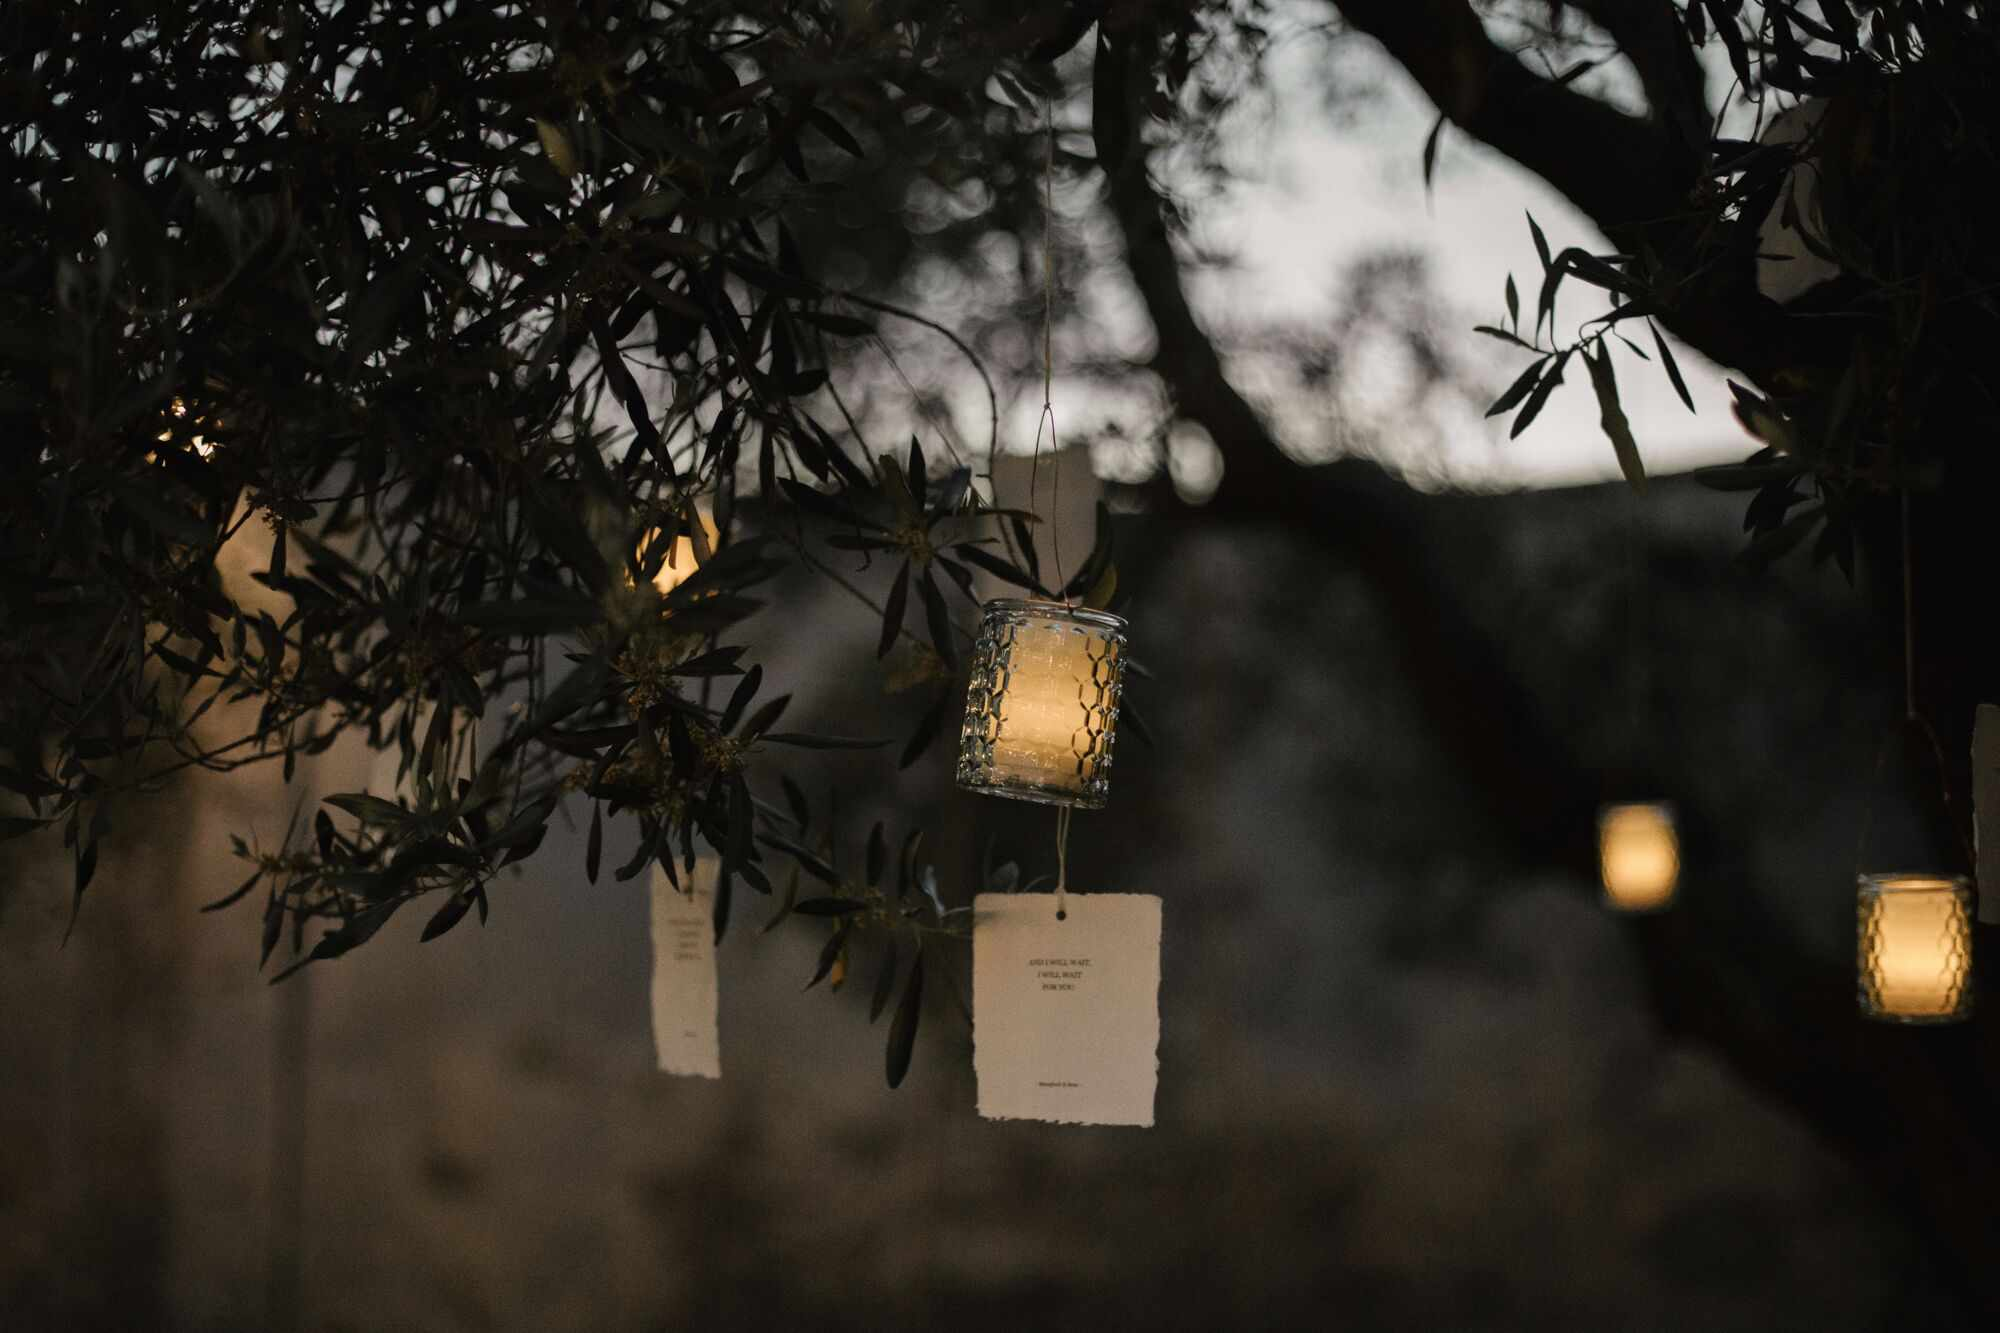 Love poems and candles hanging off of trees